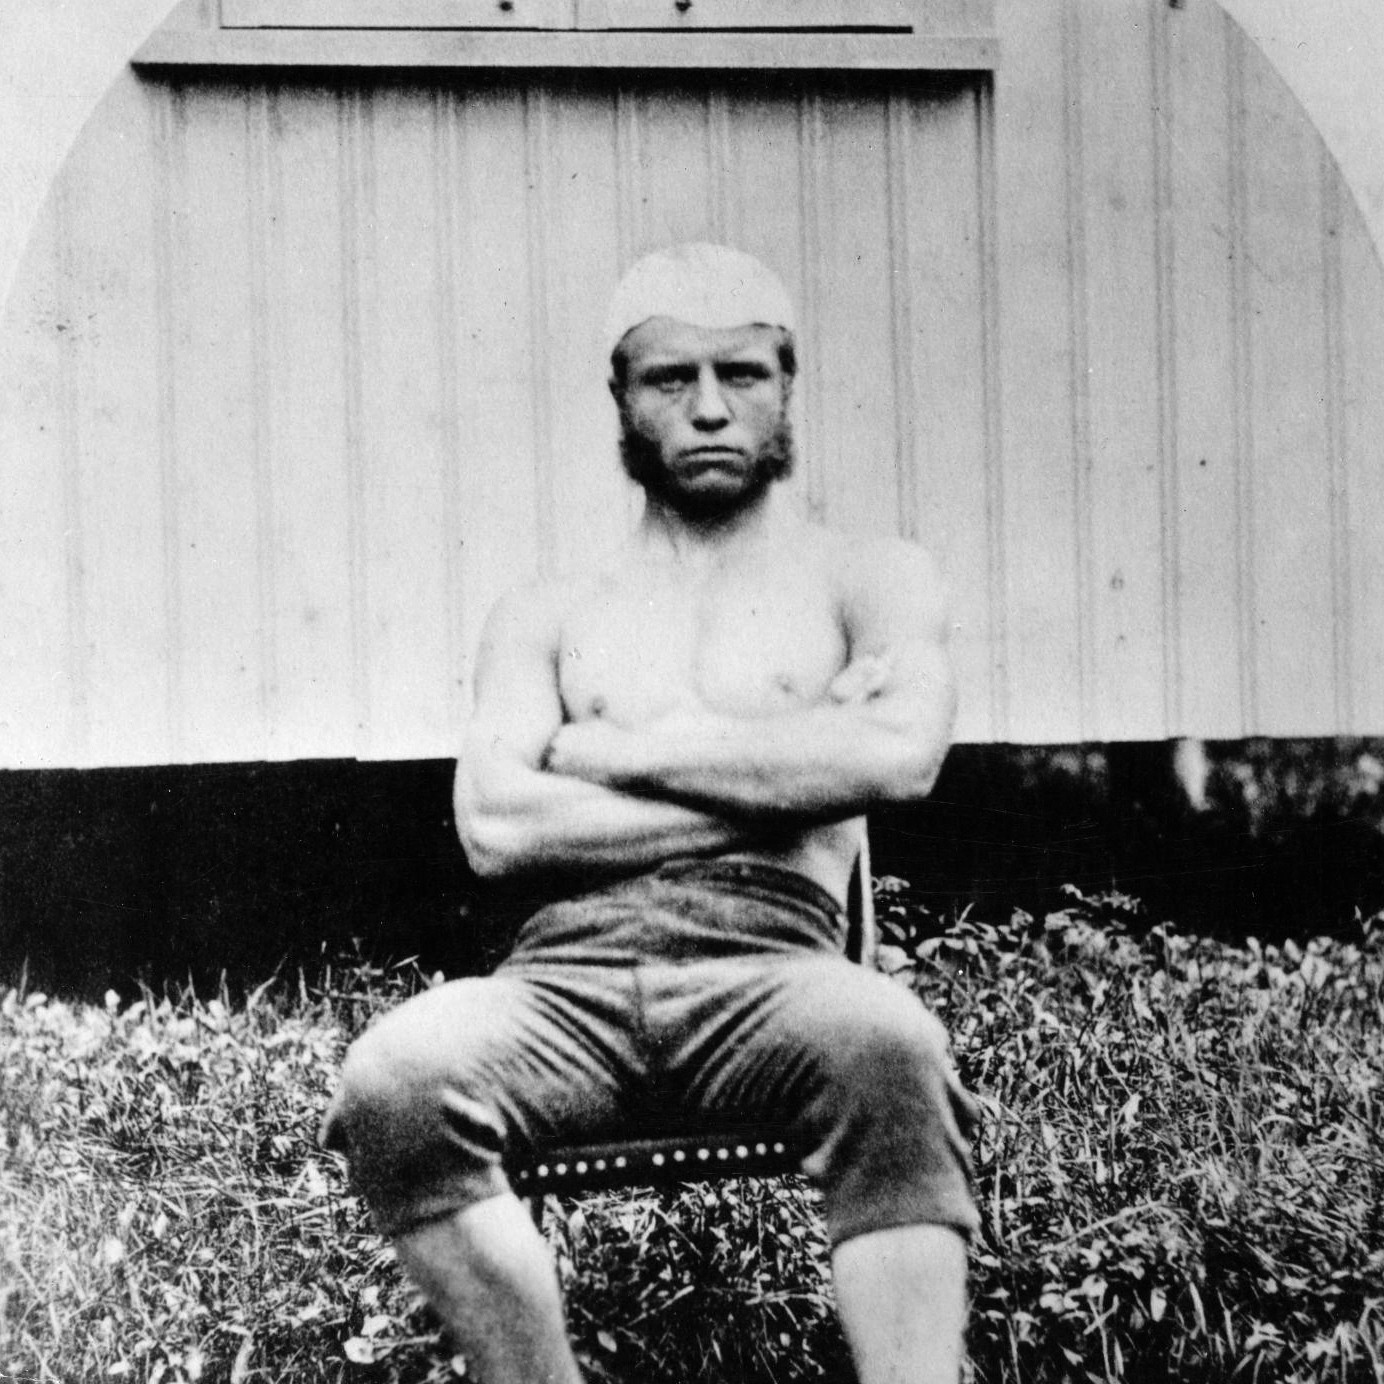 Young Theodore Roosevelt, as a boxer and wrestler at Harvard University. Harvard University image.